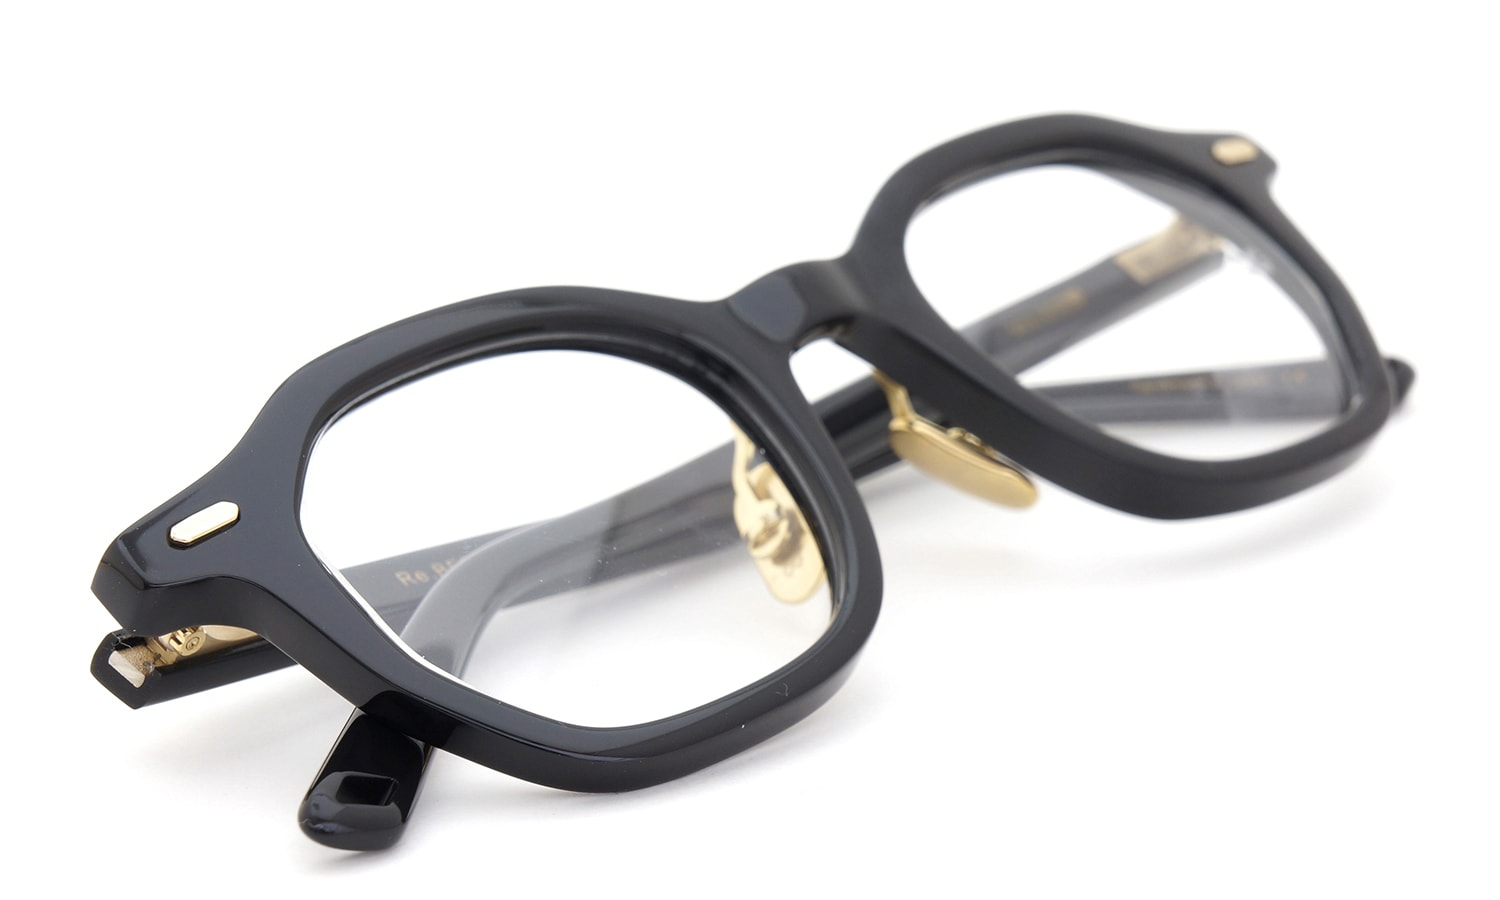 OG × OLIVER GOLDSMITH Re:BETSY 45 リ:ベッツィ 13